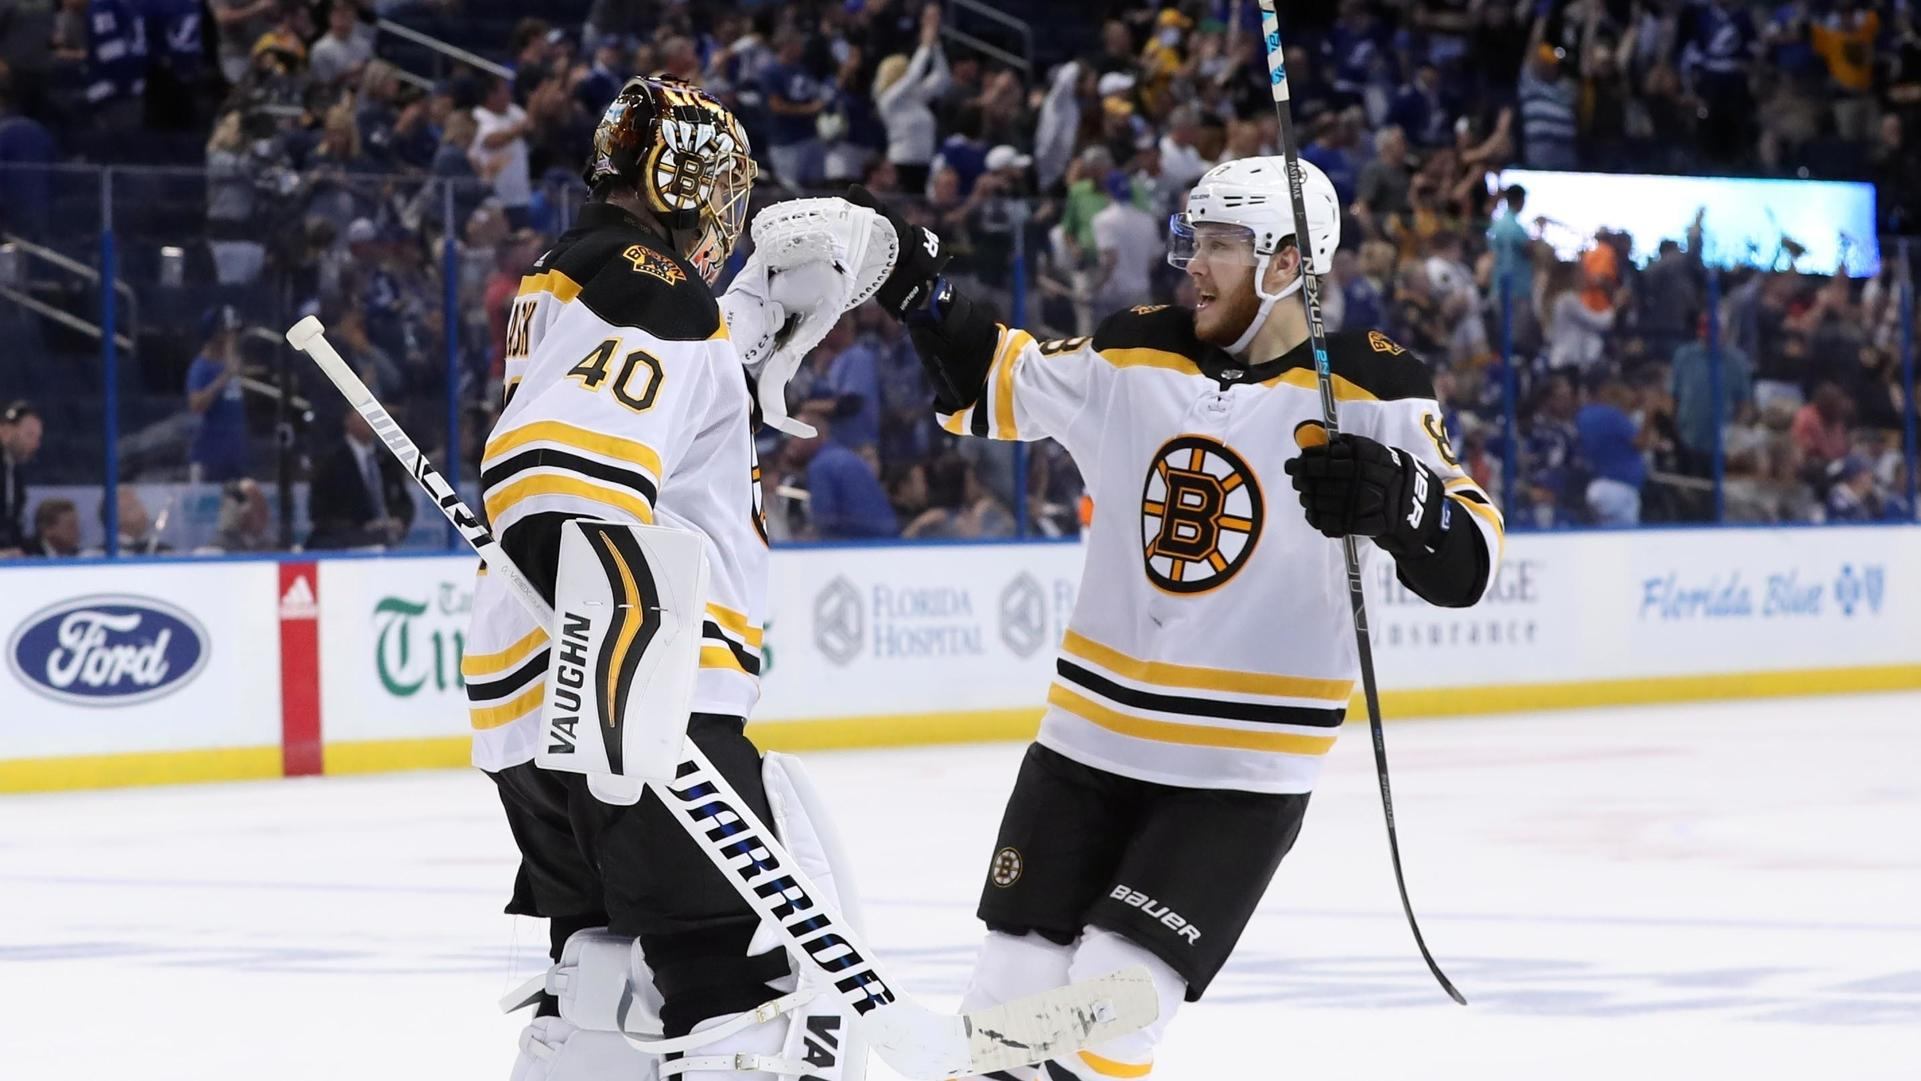 Tuukka Rask, David Pastrnak 'unfit to participate' in practice as Bruins ready for Carolina